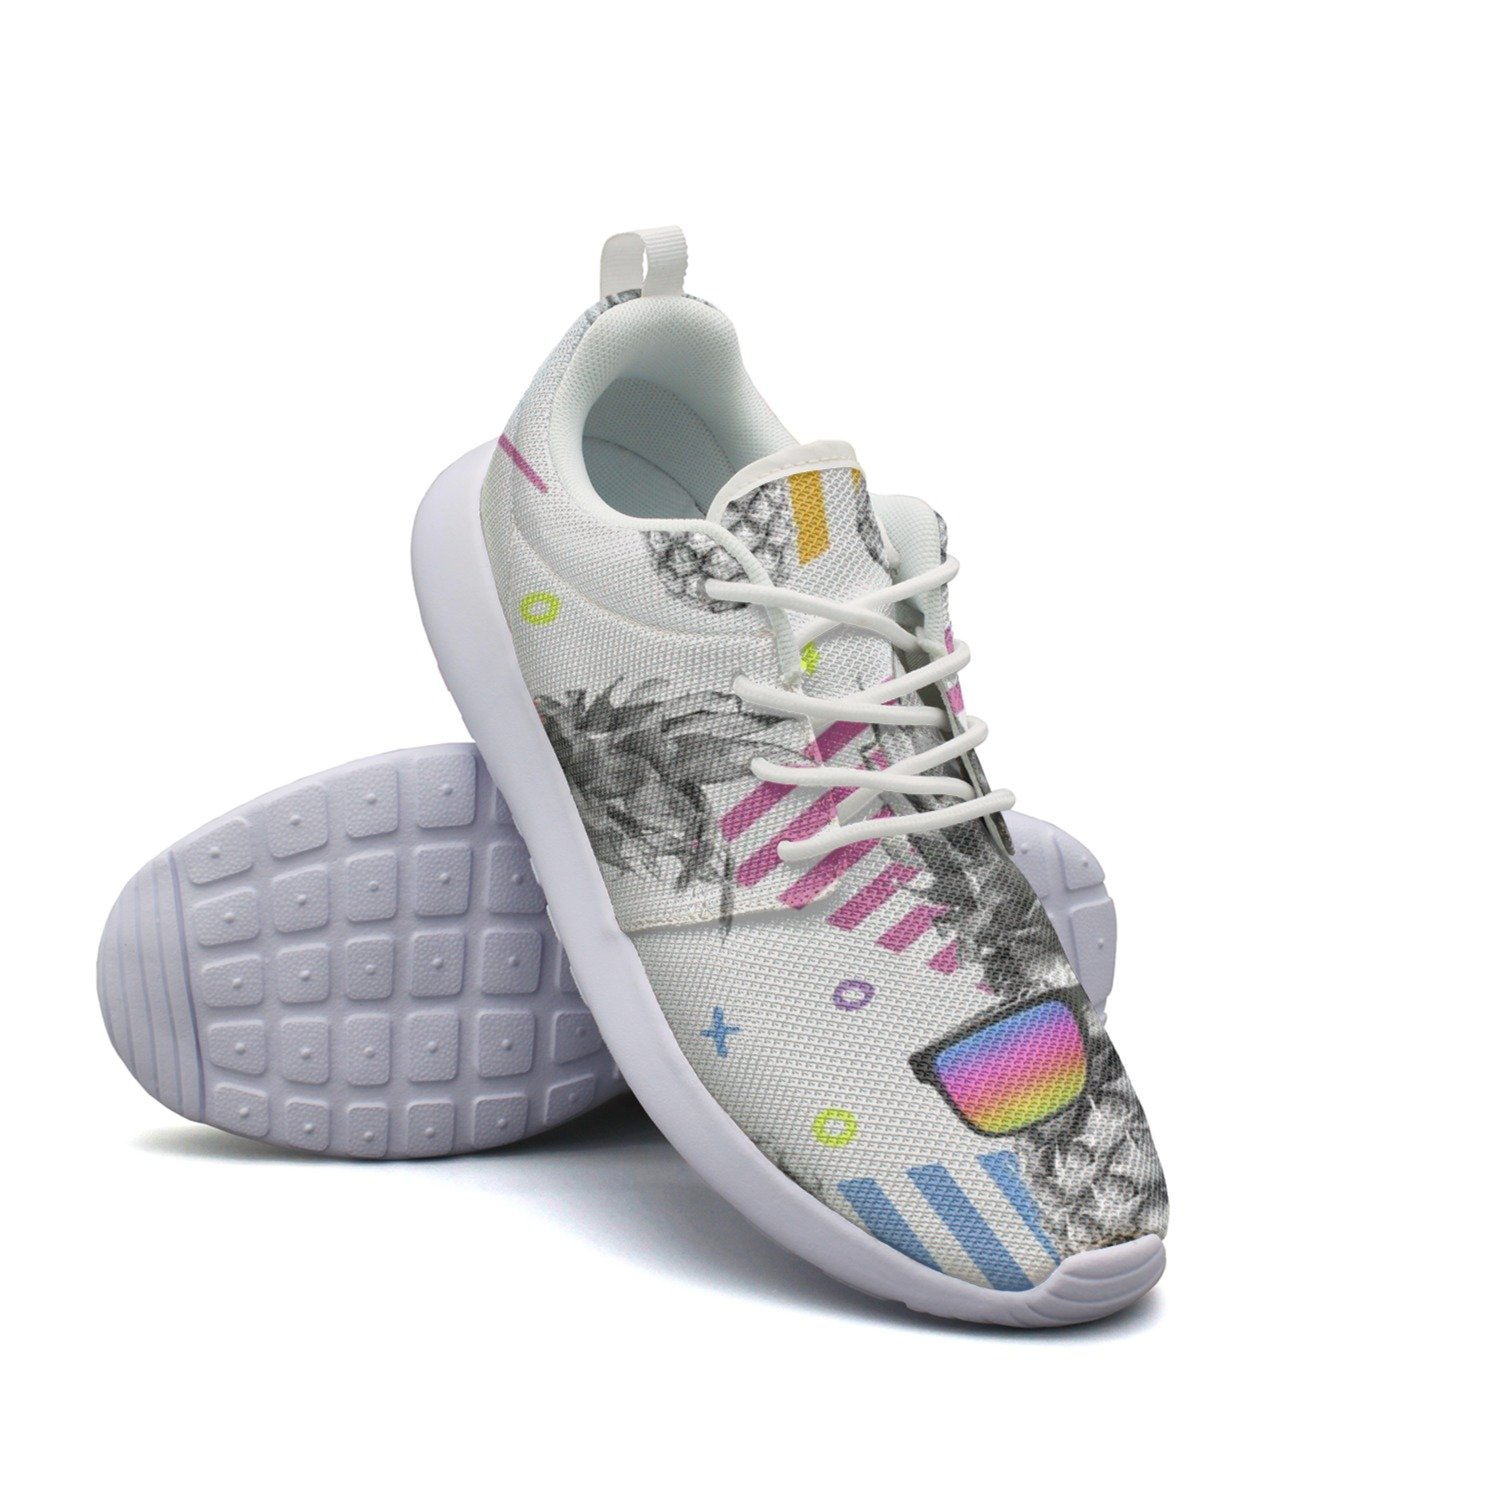 Awesome Style Pineapple With Vintage Eye Glasses Women's Net Fashion Running Shoes Navy Colorful